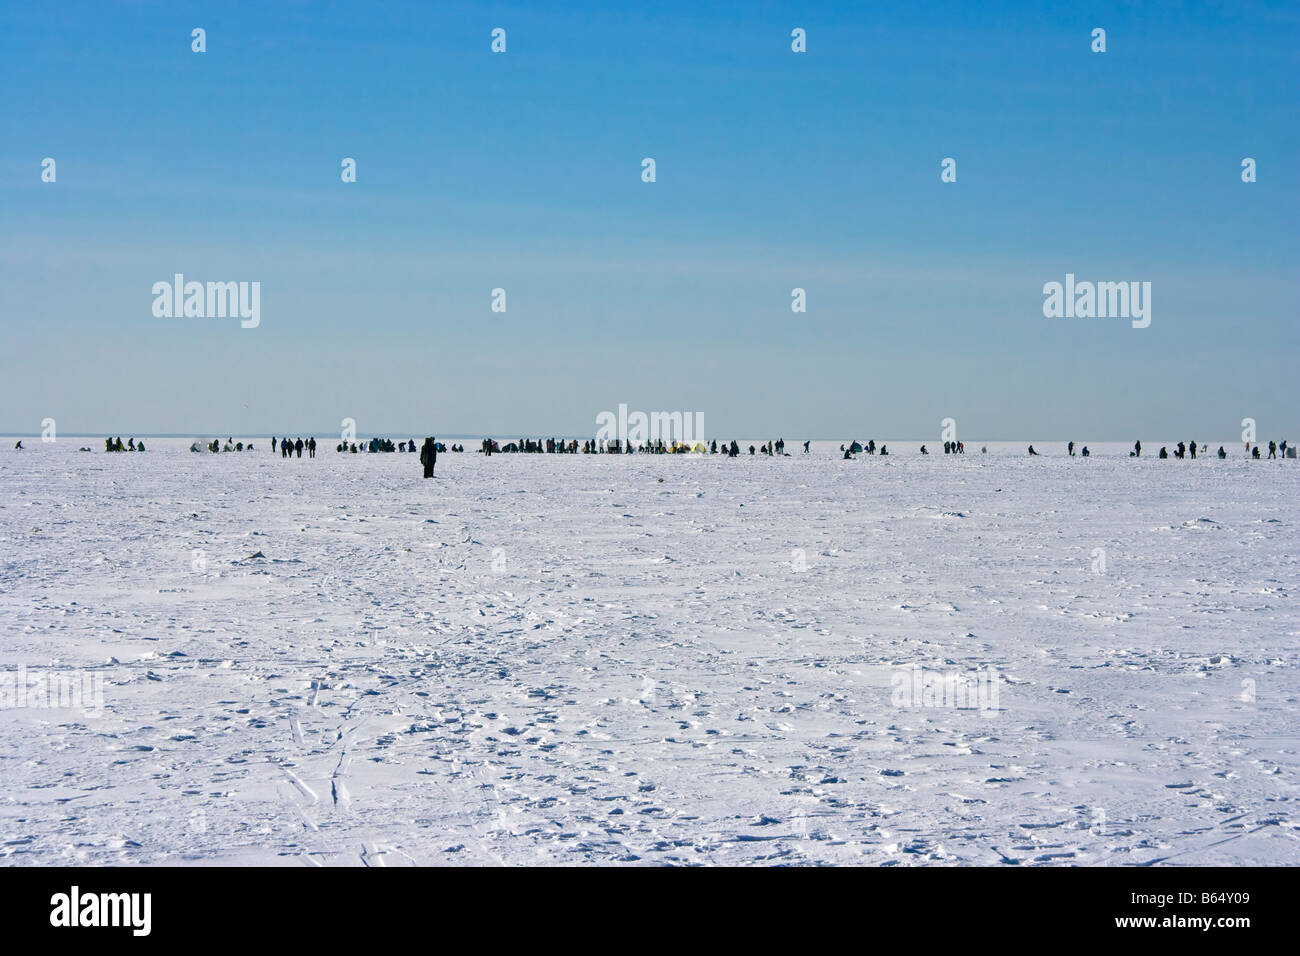 Fishers on ice of Gulf of Finland in sunny February day near St. Petersburg - Stock Image